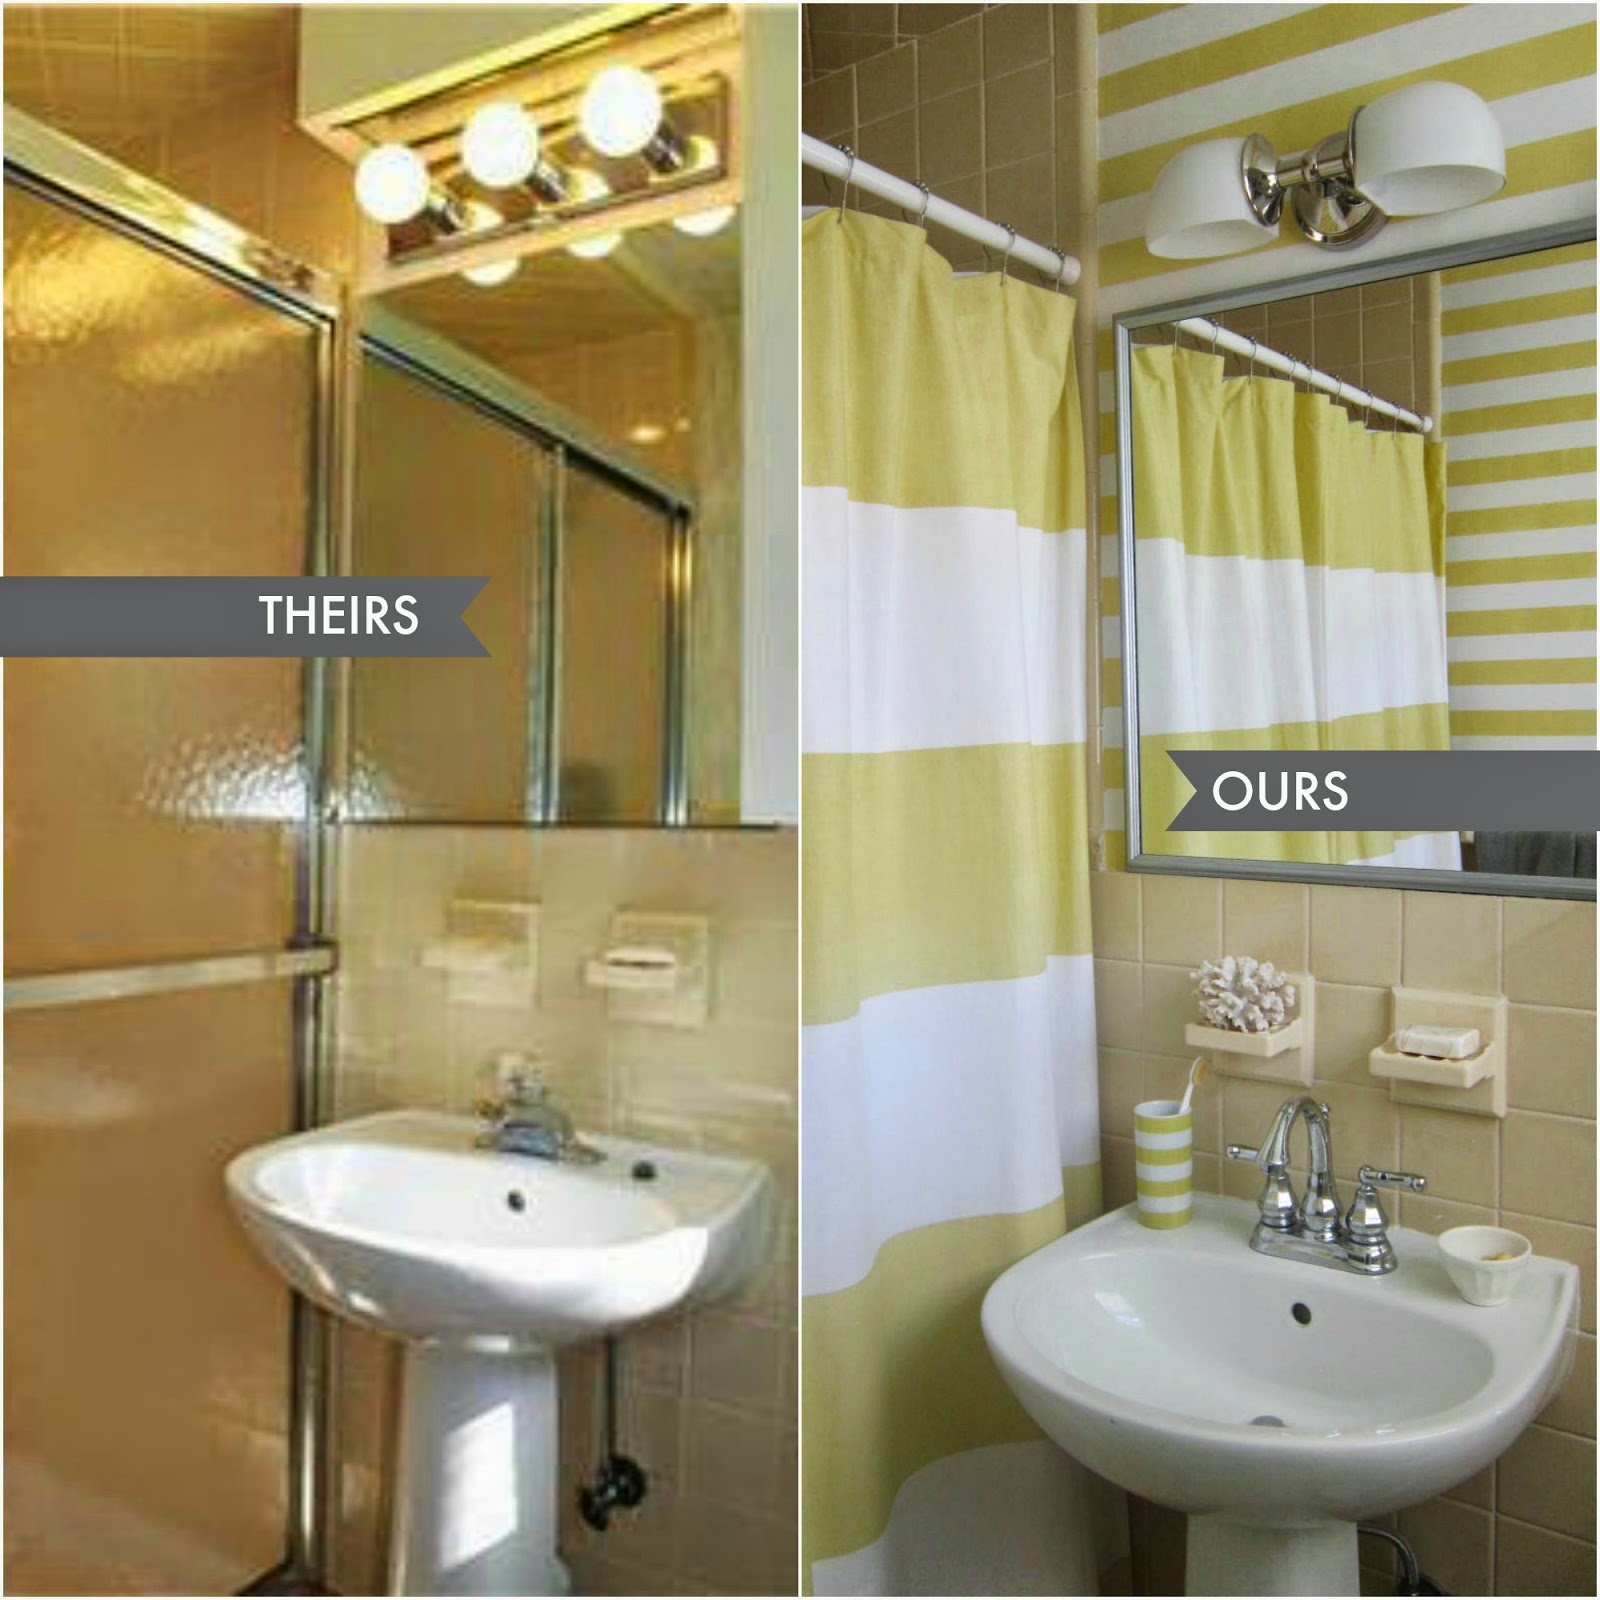 92 Shower Curtains Over Doors Door Towel Rack & Shower Curtain Over Door | Gopelling.net